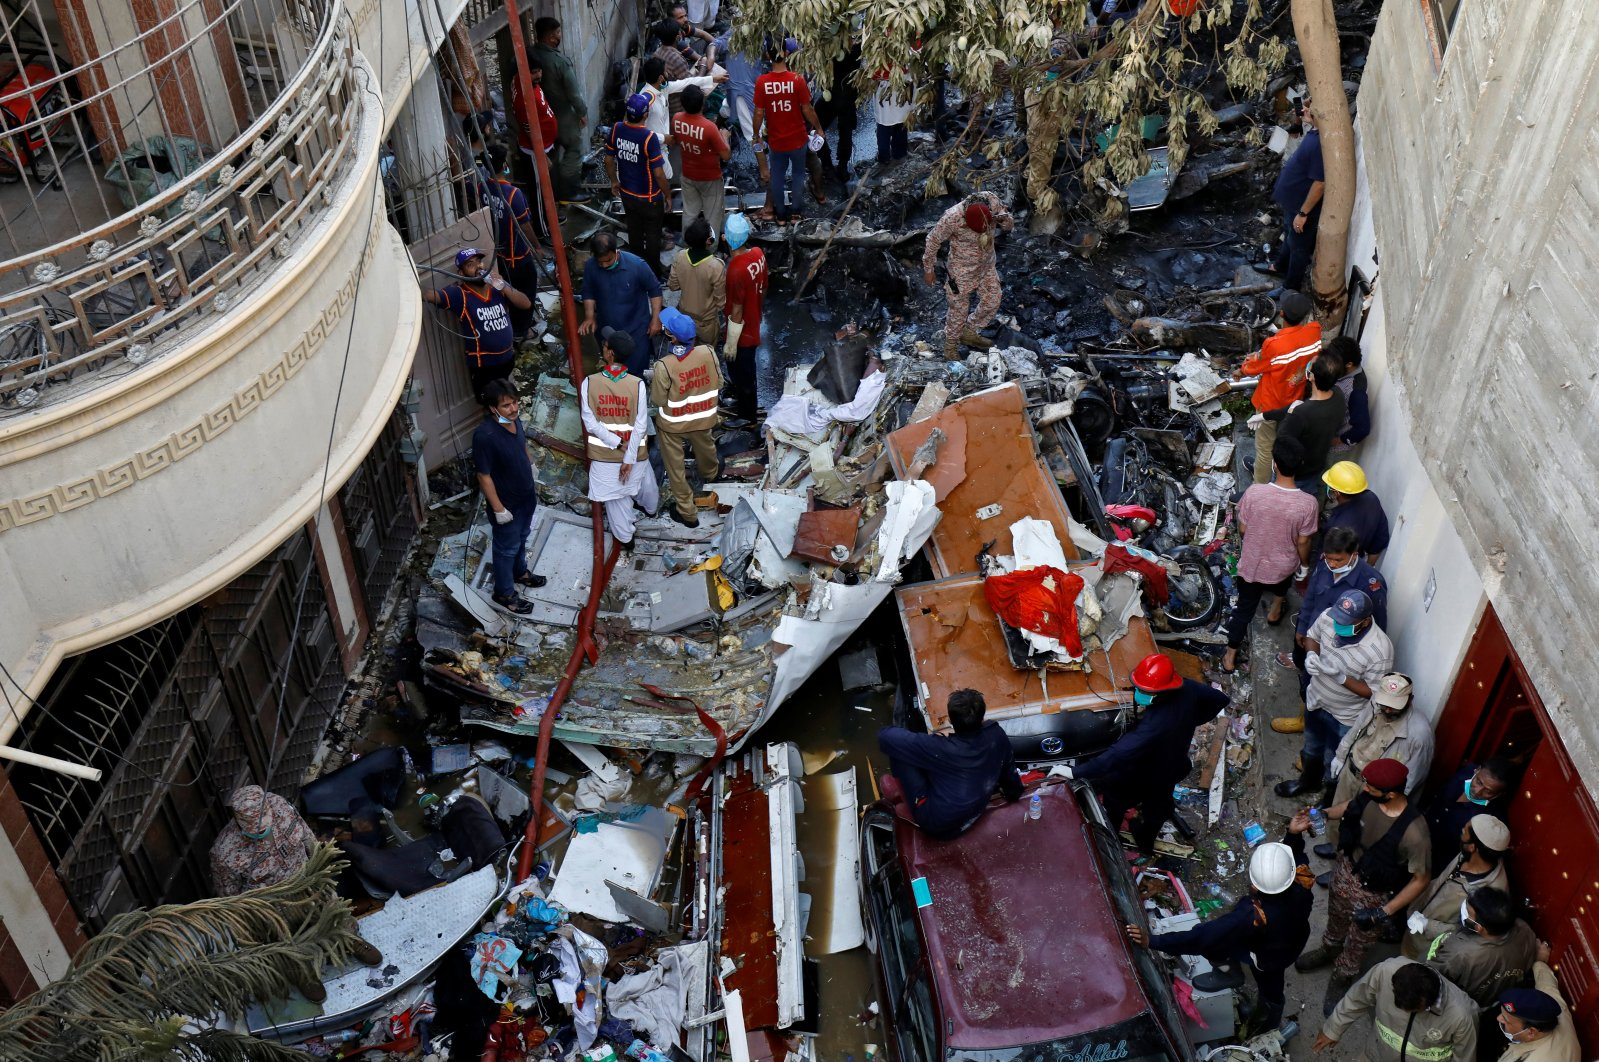 Rescue workers gather at the site of a passenger plane crash in a residential area near an airport in Karachi, Pakistan, May 22, 2020. (Reuters Photo)